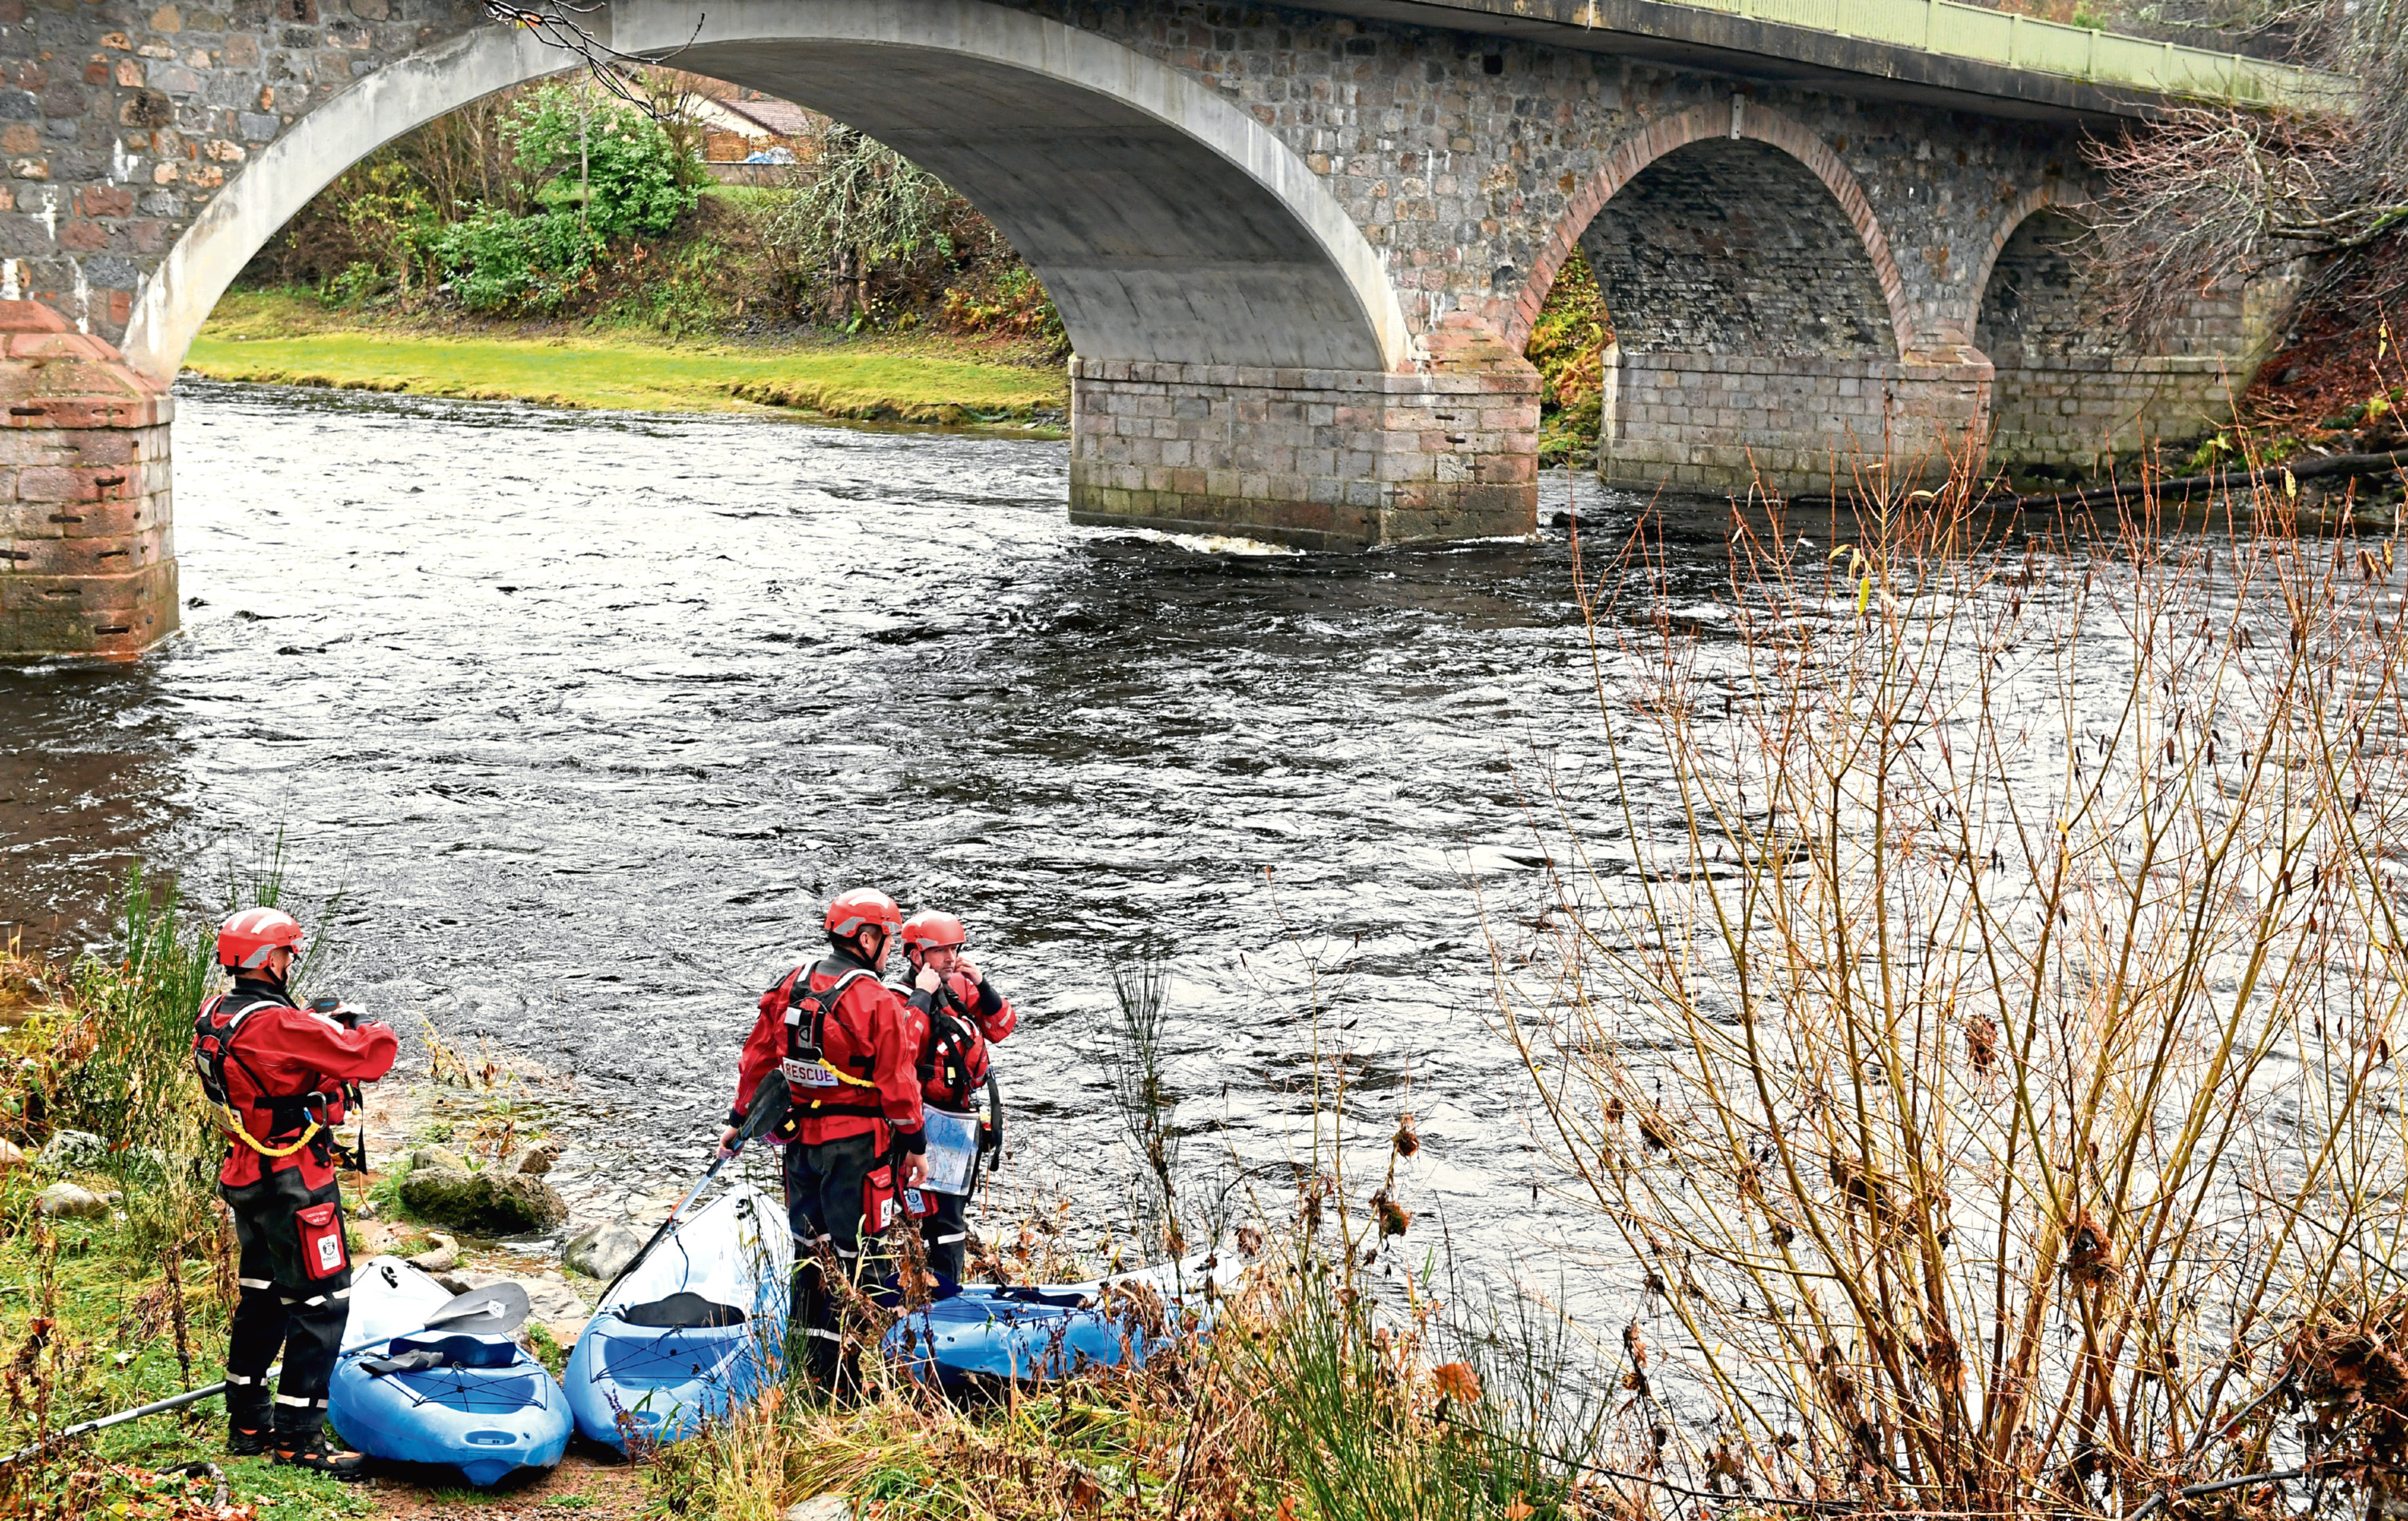 Police Scotland search down the River Dee from Banchory looking for missing teenager Liam Smith.